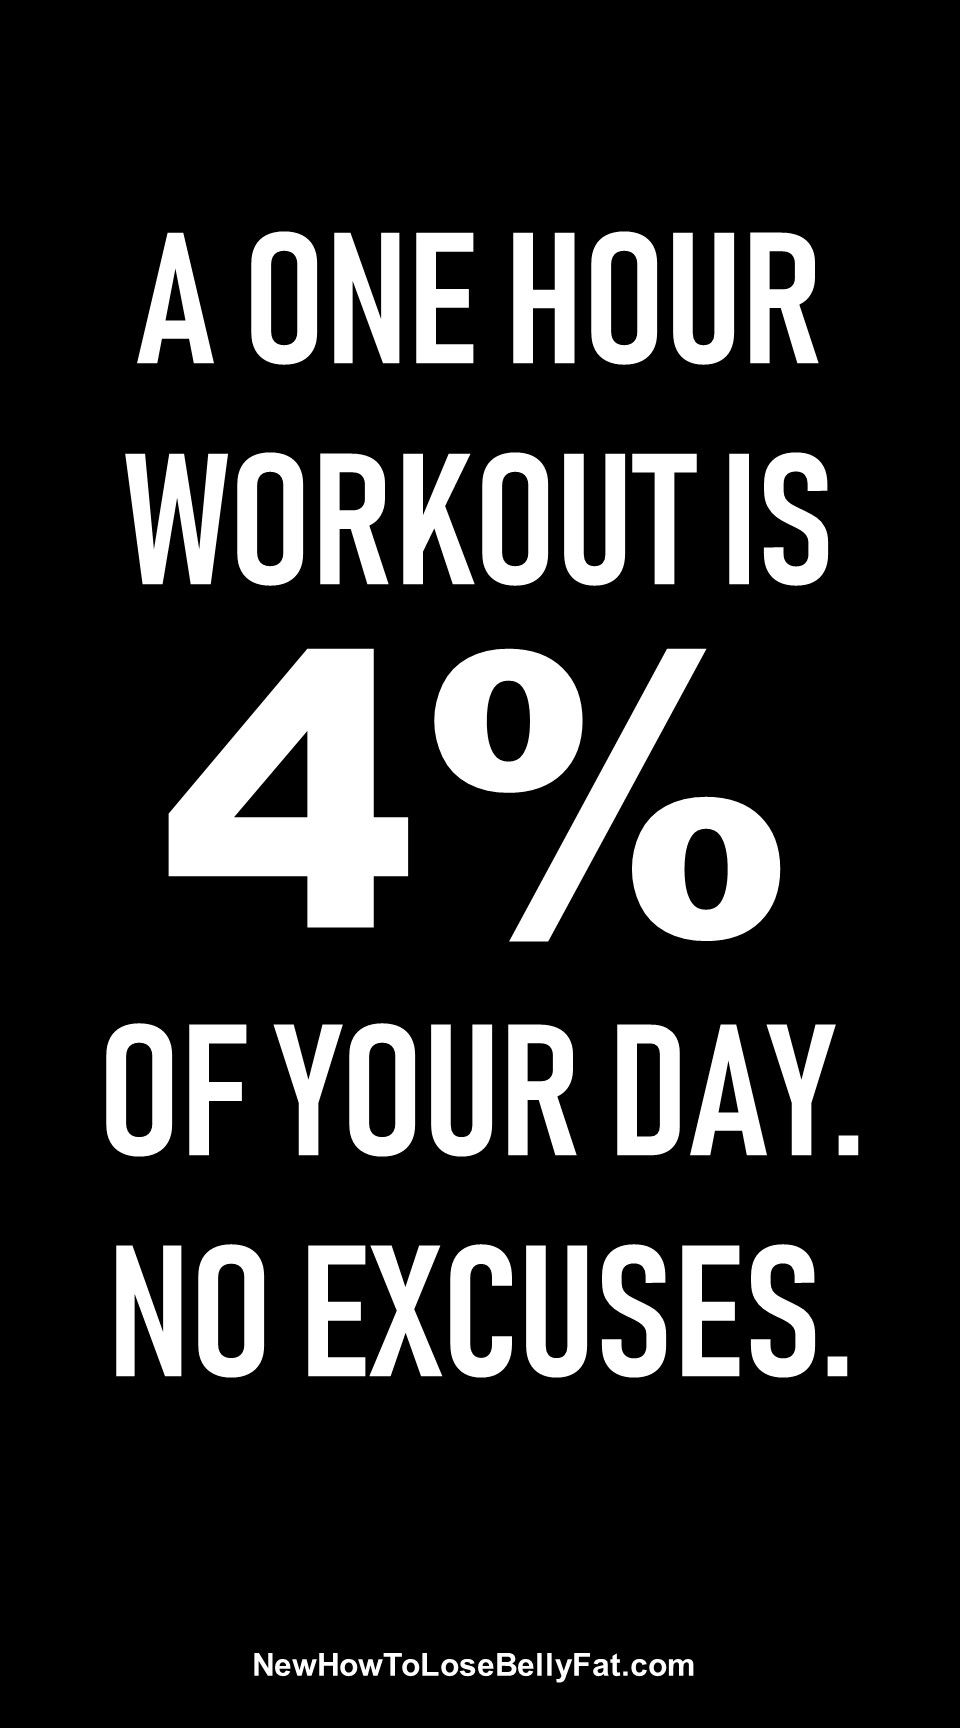 81df60ddf A one hour workout is 4% of your day. No excuses. | Posted By:  CustomWeightLossProgram.com